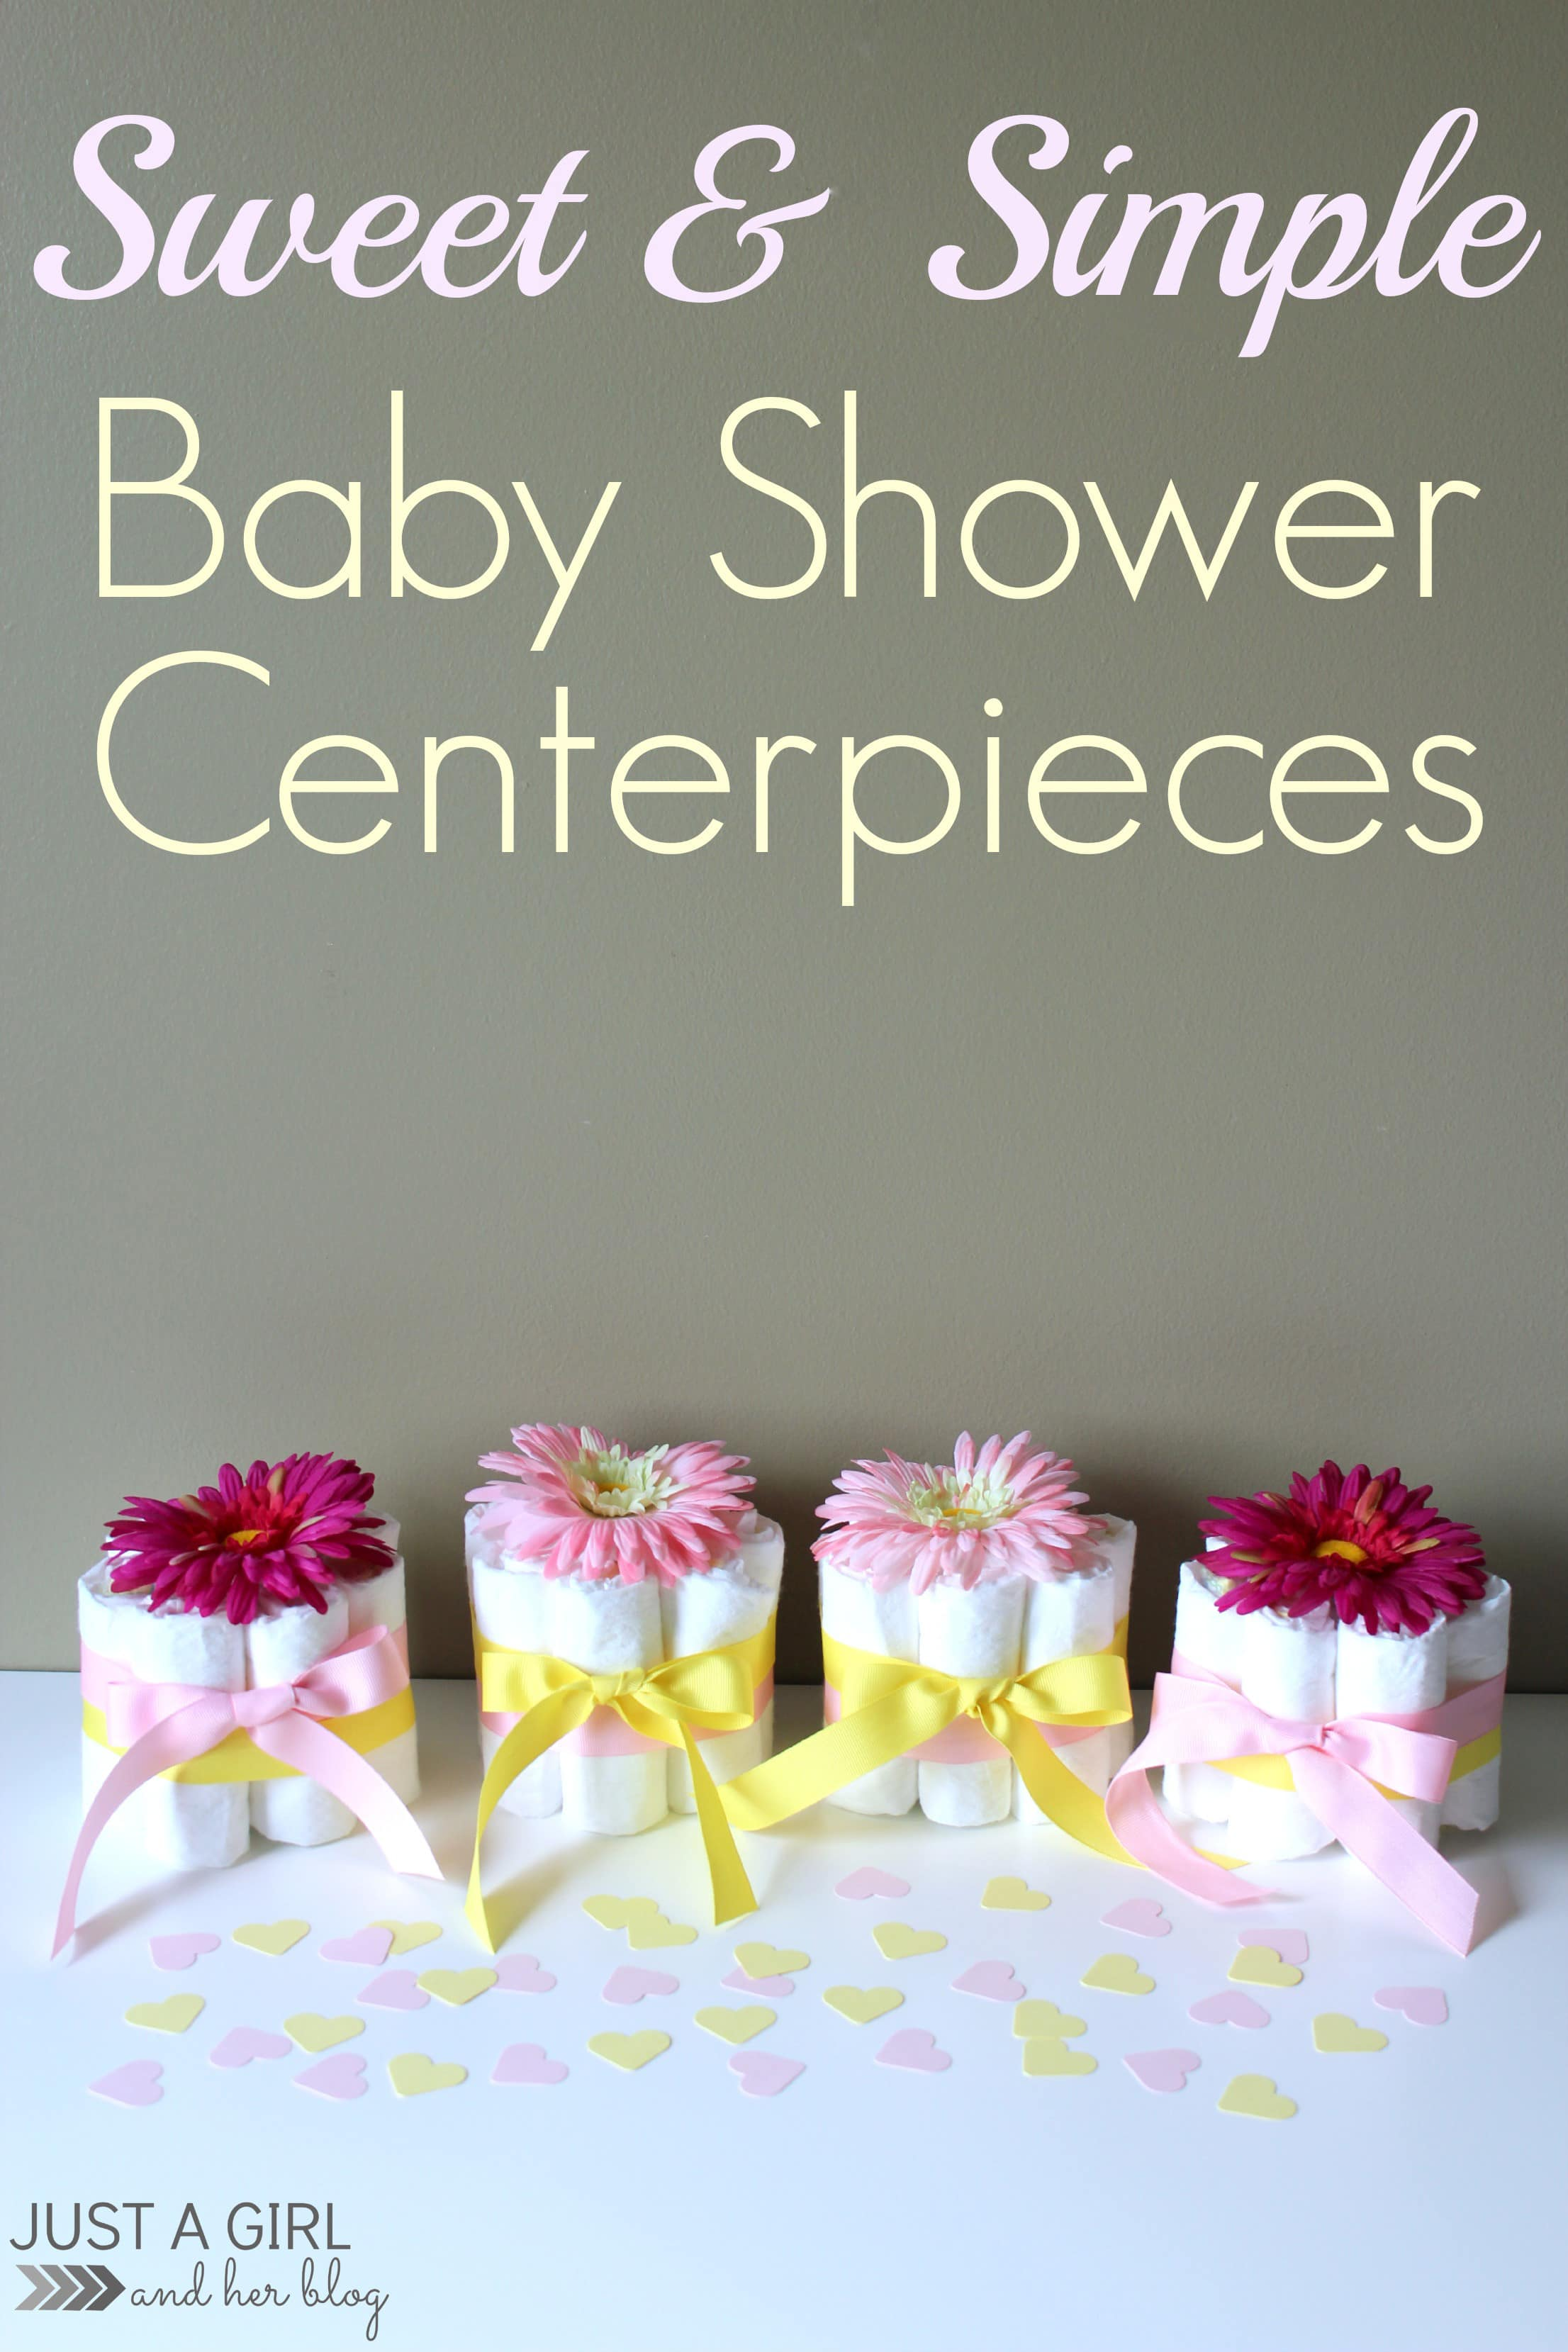 Simple Baby Shower Centerpieces 2212 x 3318